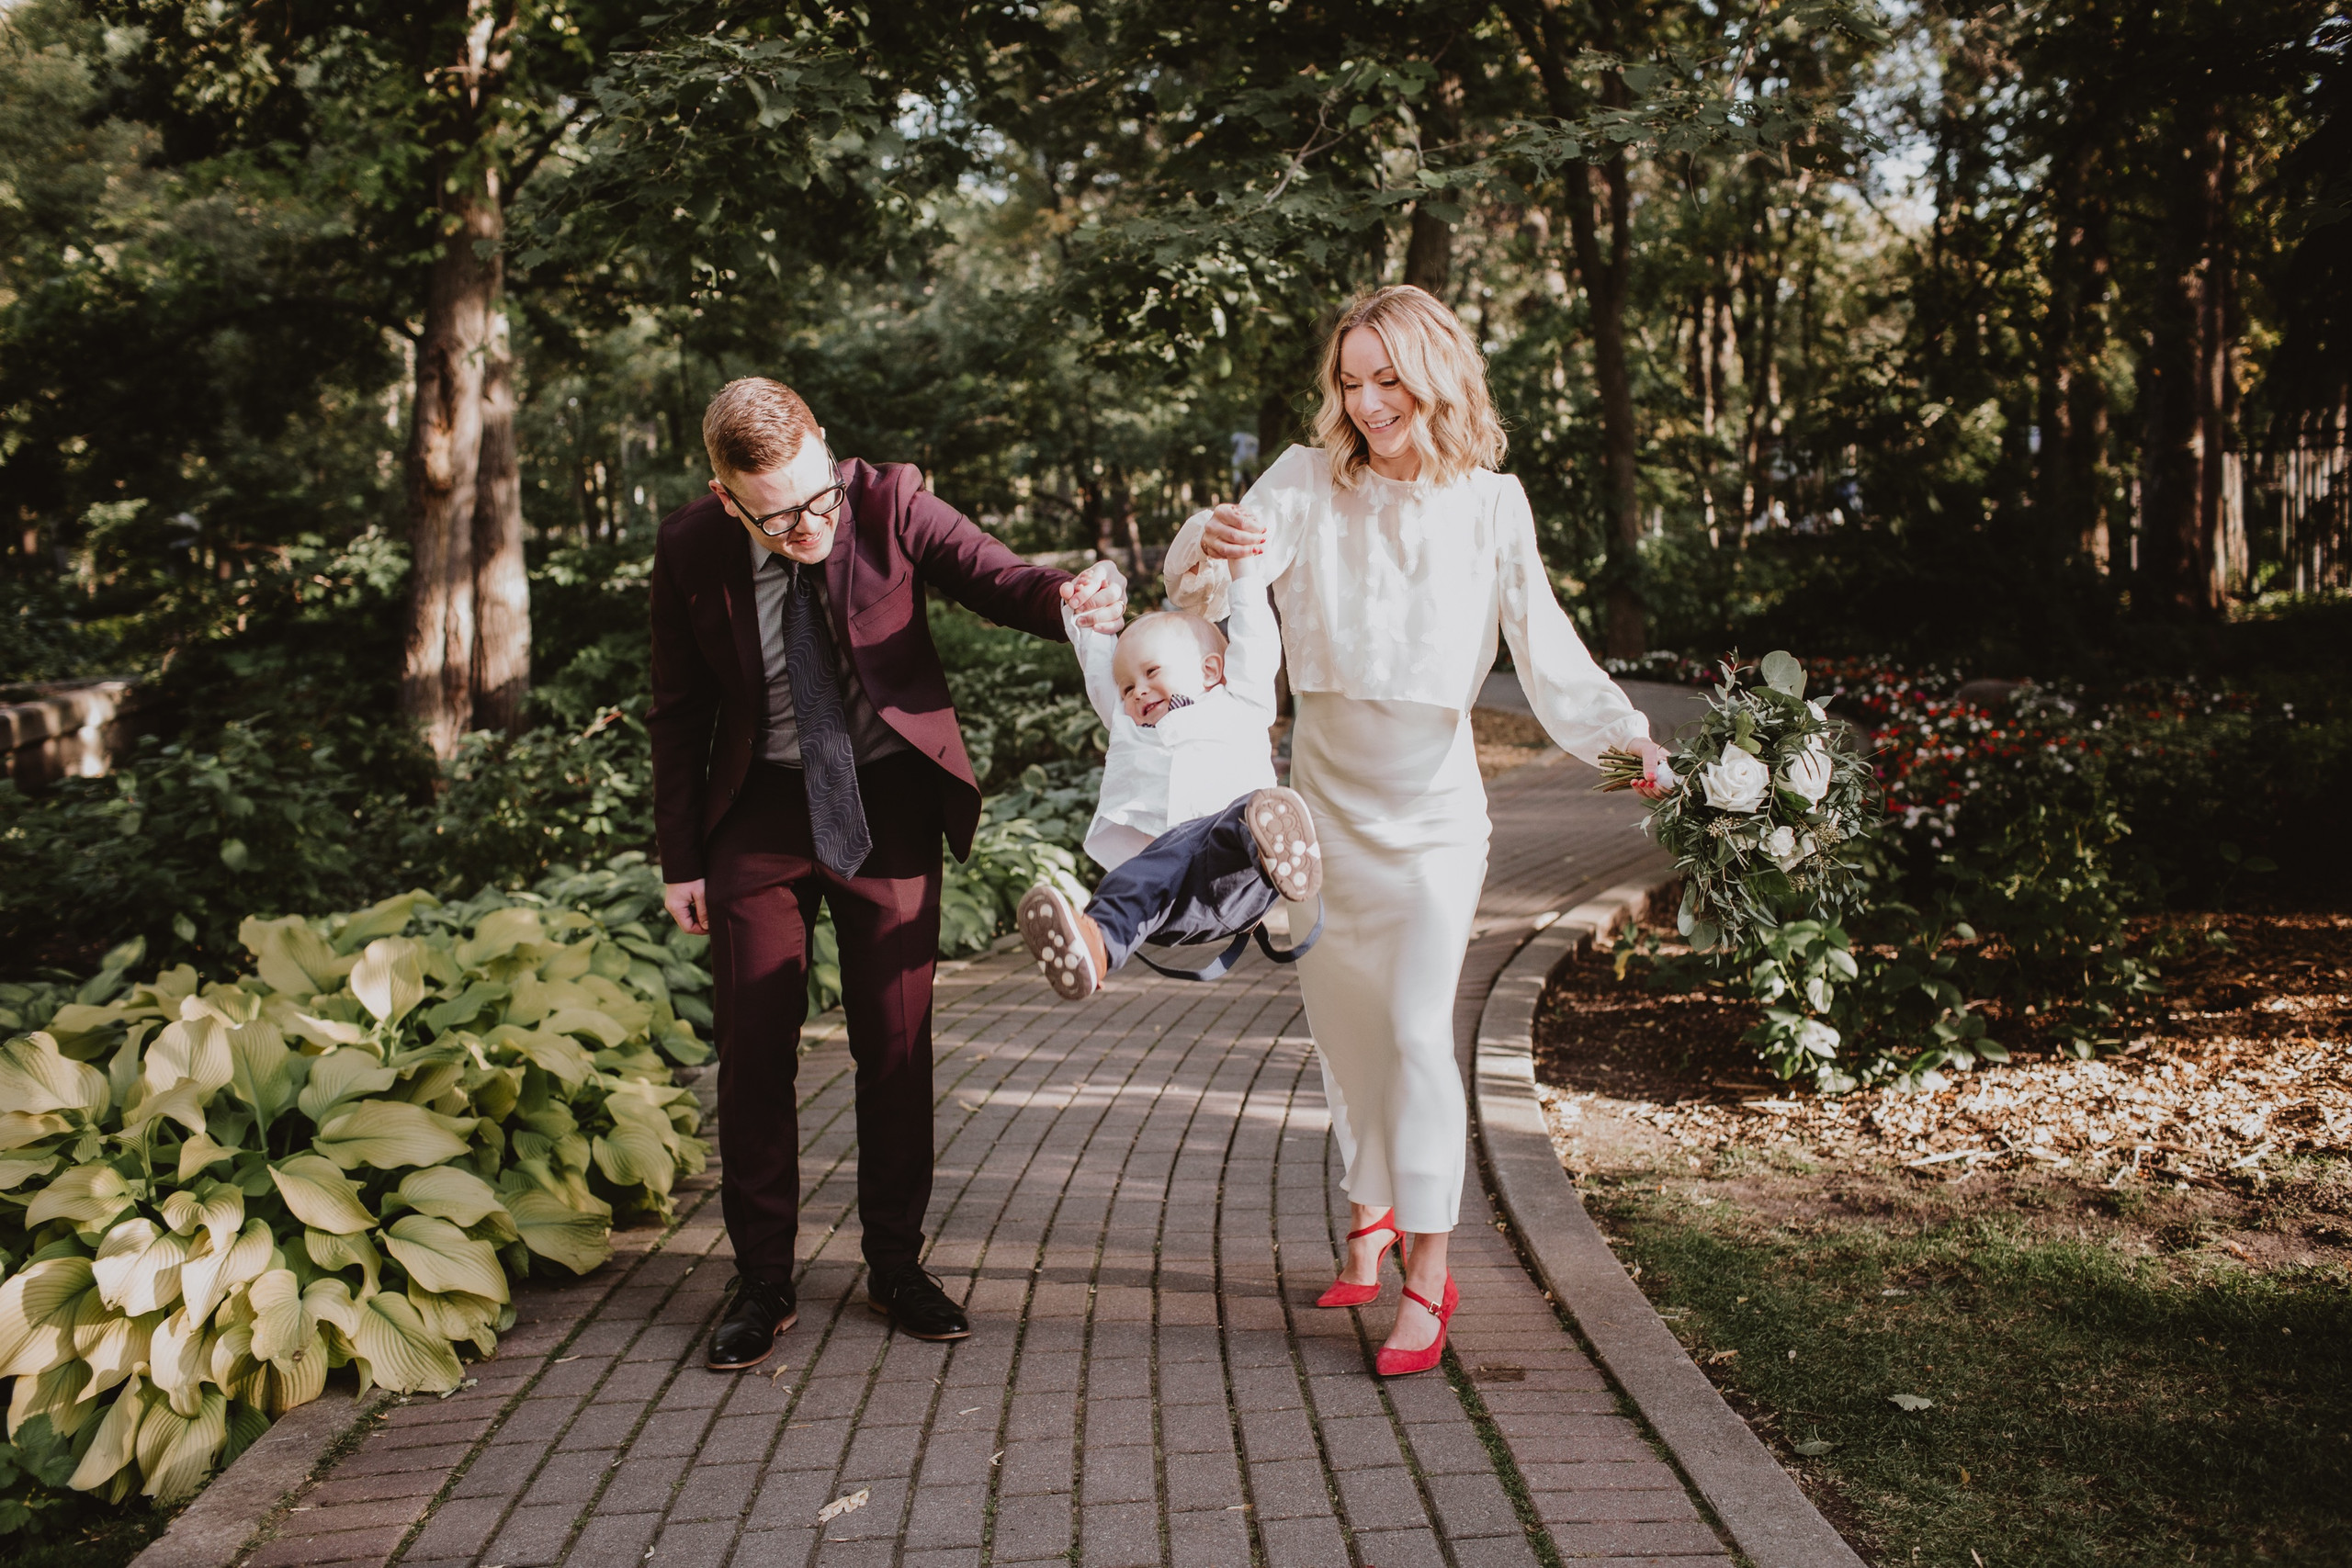 Family Wedding Ideas - bride and groom swing son between them, celebrating post wedding ceremony.